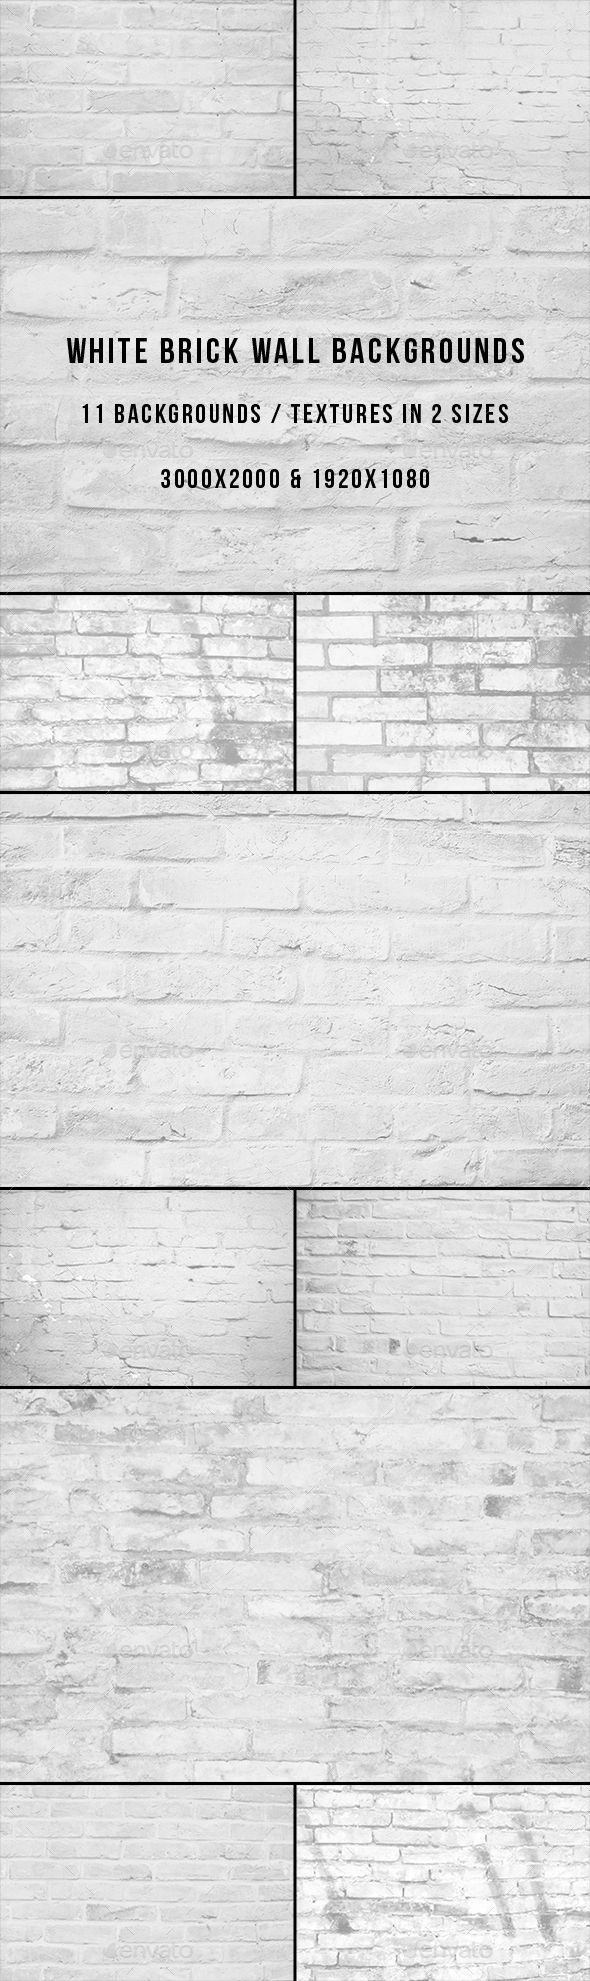 Plain wood table with hipster brick wall background stock photo - White Brick Wall Backgrounds